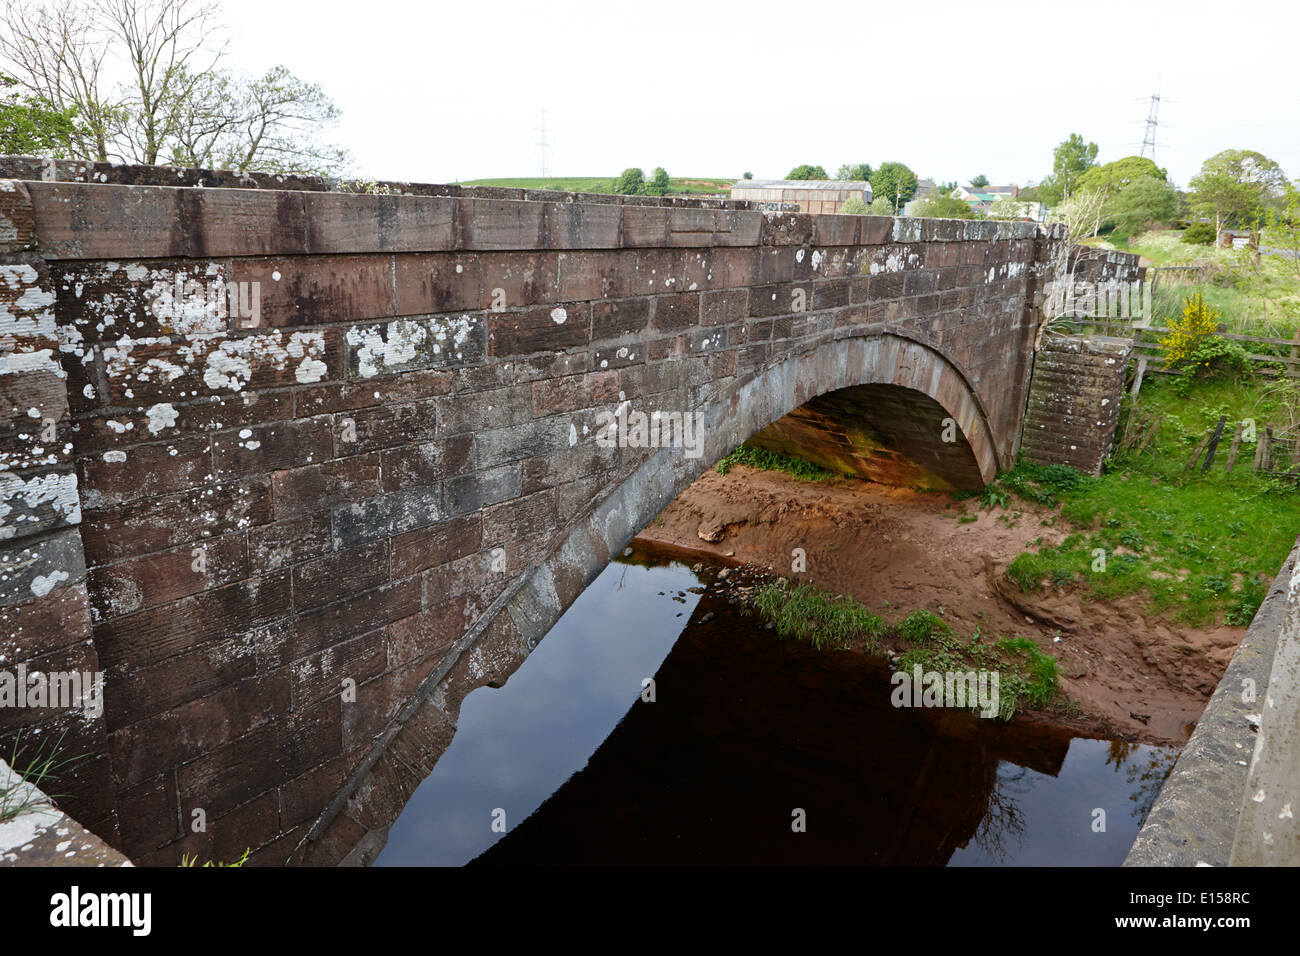 plump bridge over the river sark which forms the scotland england border between dumfries and galloway and cumbria at gretna - Stock Image